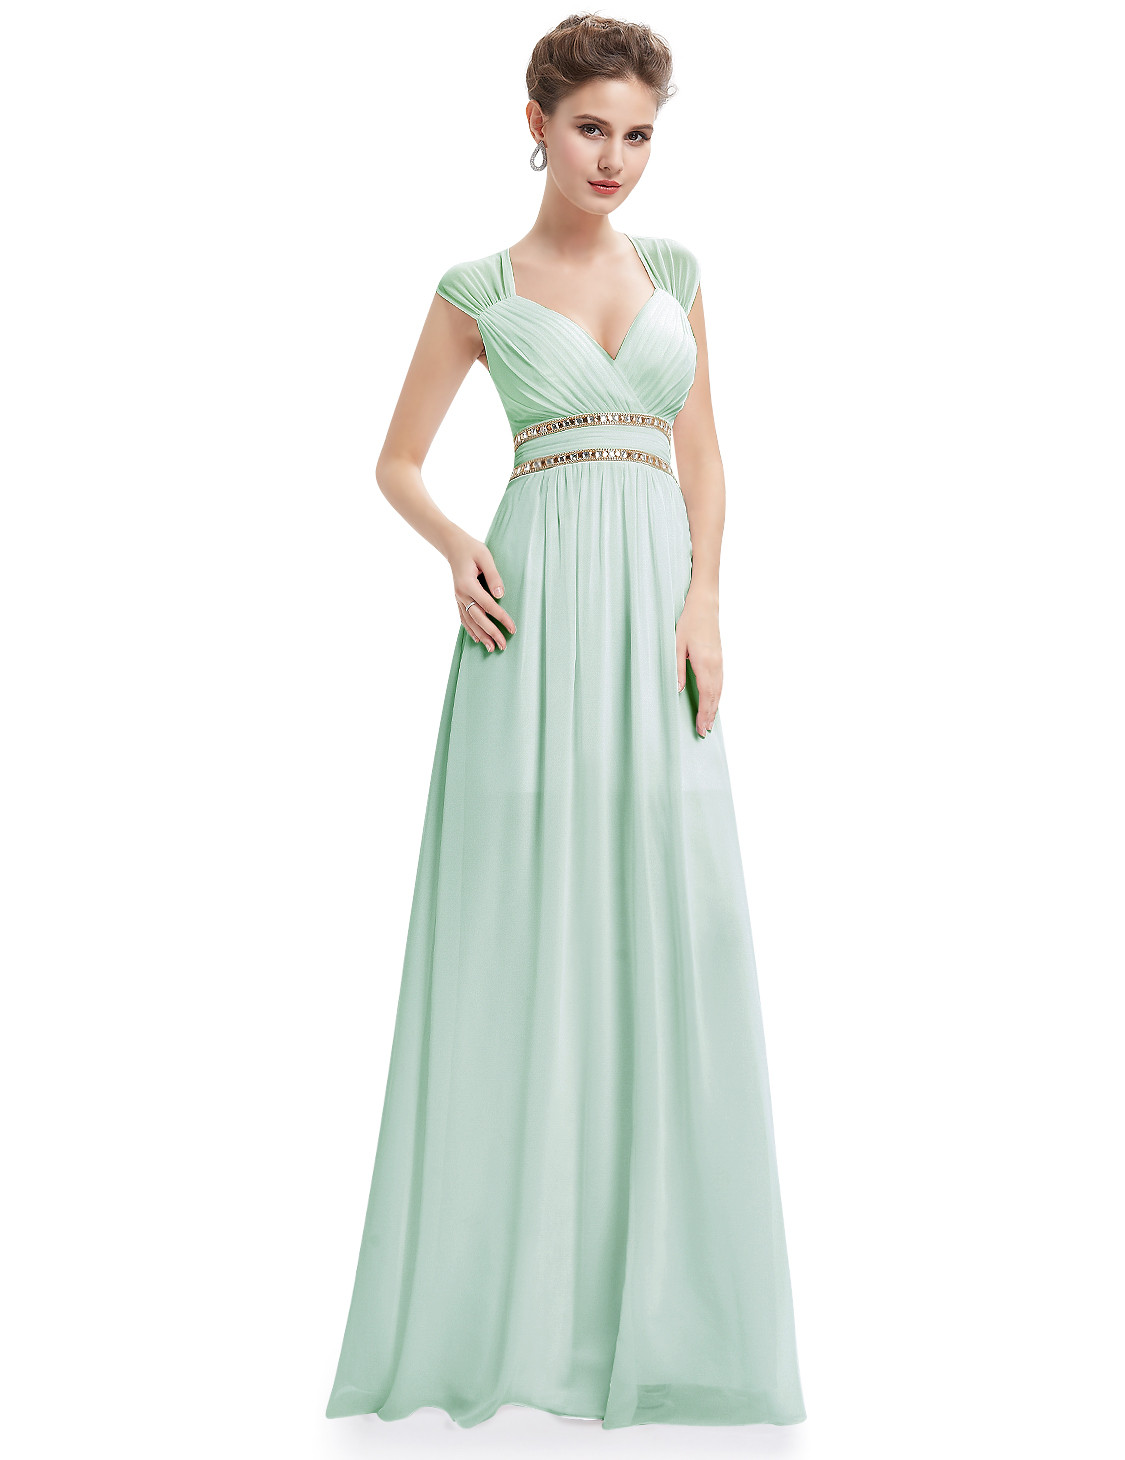 Mint Green Elegant V-neck Bridesmaid Dress